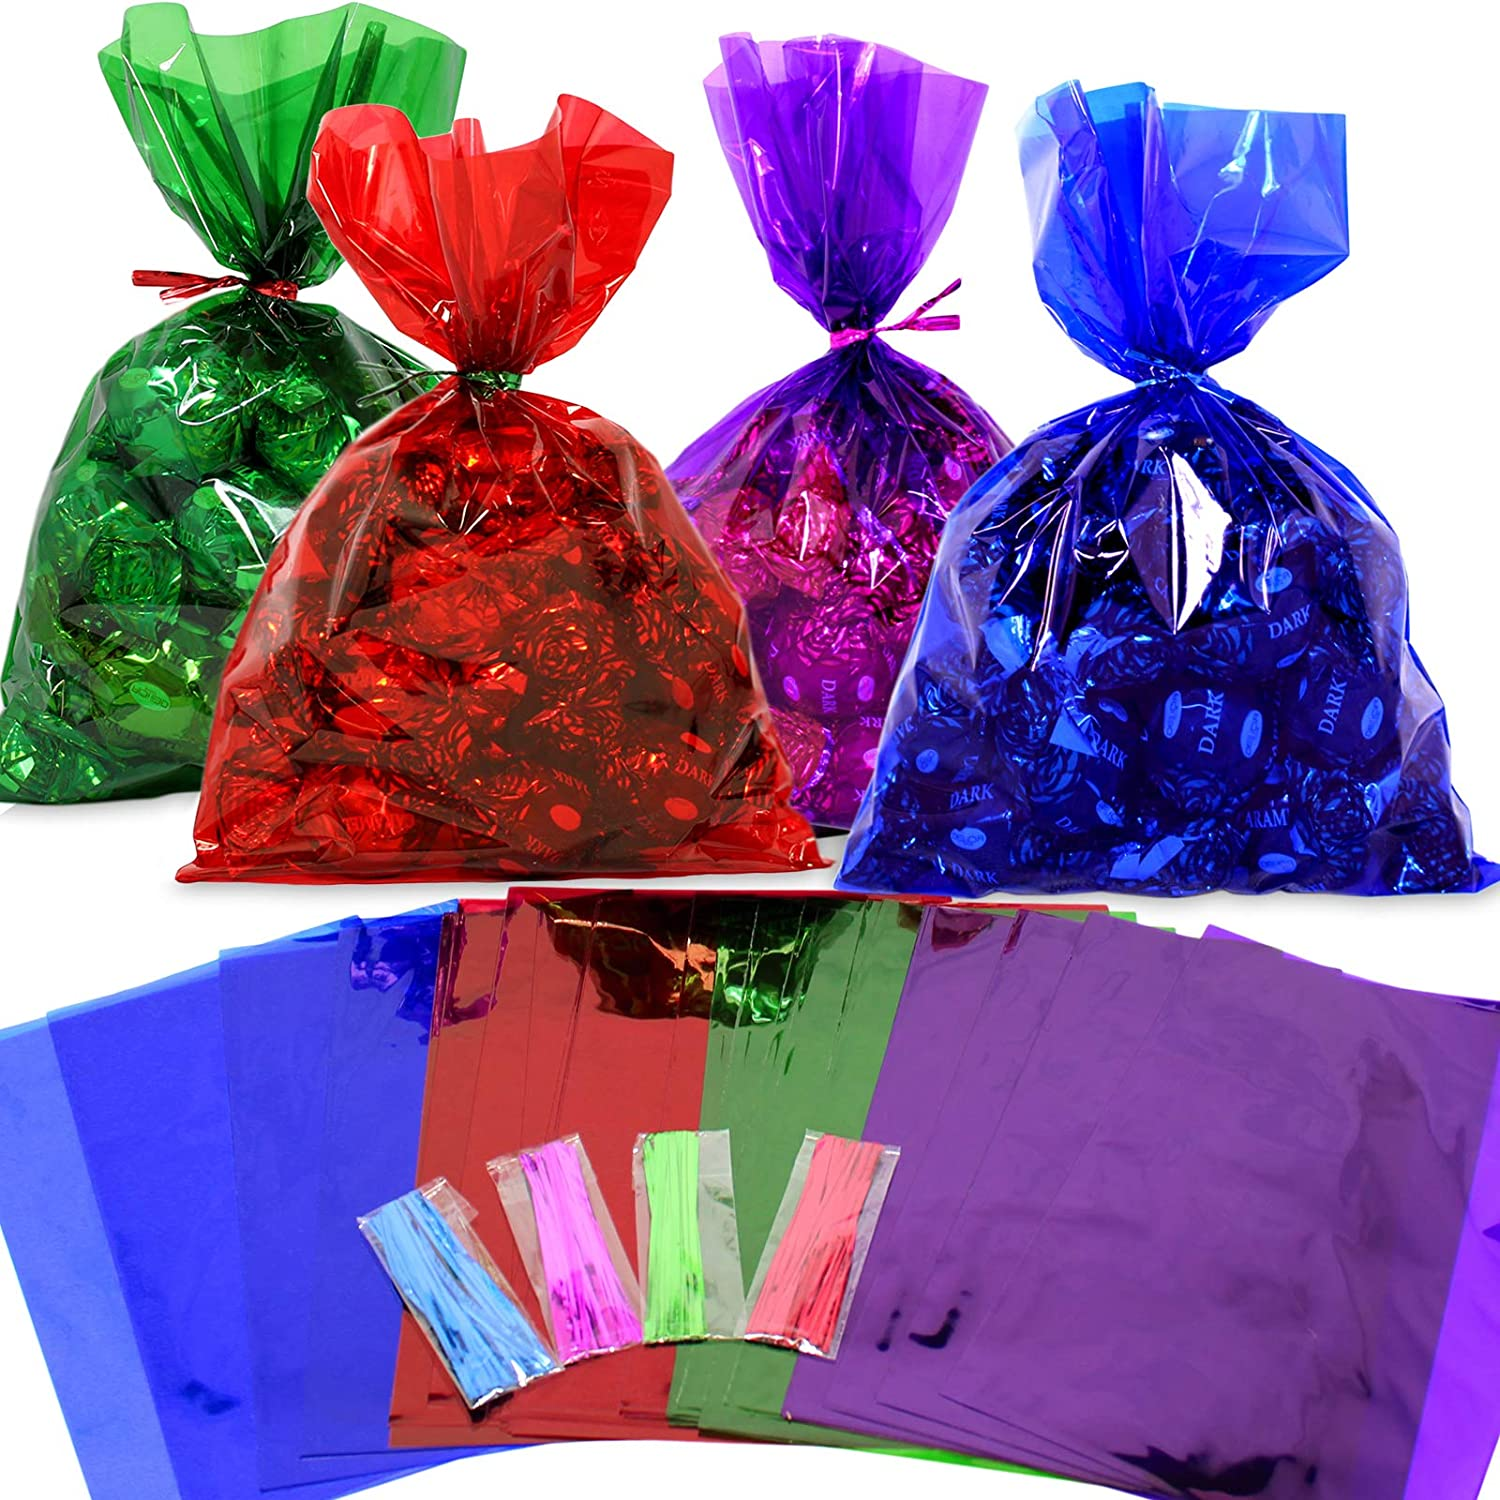 Cellophane Bags 100 pcs Mix Colors (6 Inch x 9 Inch) | Colorful Cello Treat Bags with Twist Ties | 2.5 Mil Quality Cellophane Treat Bags | Transparent Color 6x9 Inch Bags | by Anapoliz